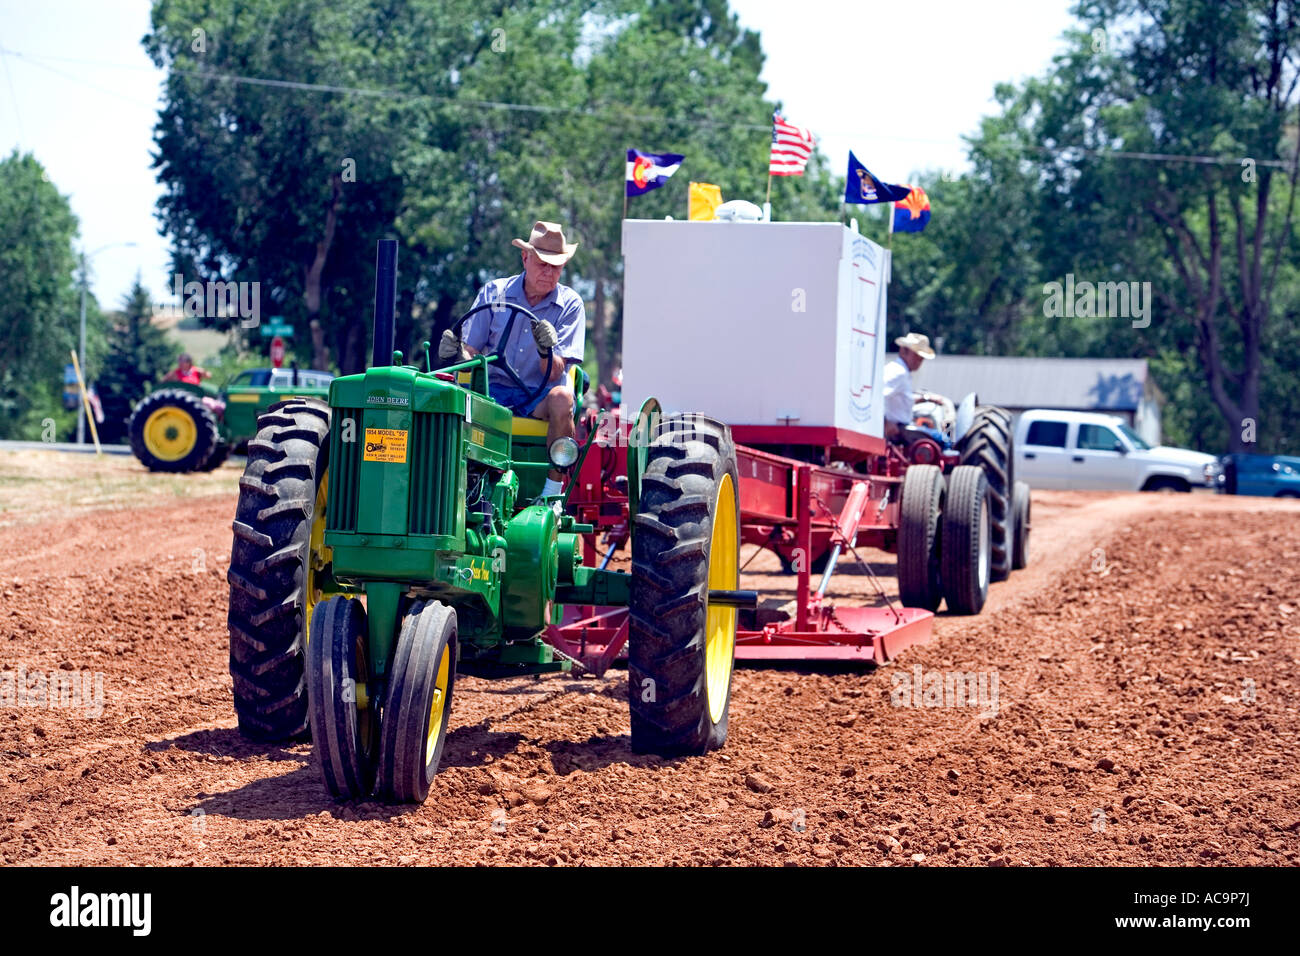 Antique Tractor Pull Stock Photos & Antique Tractor Pull